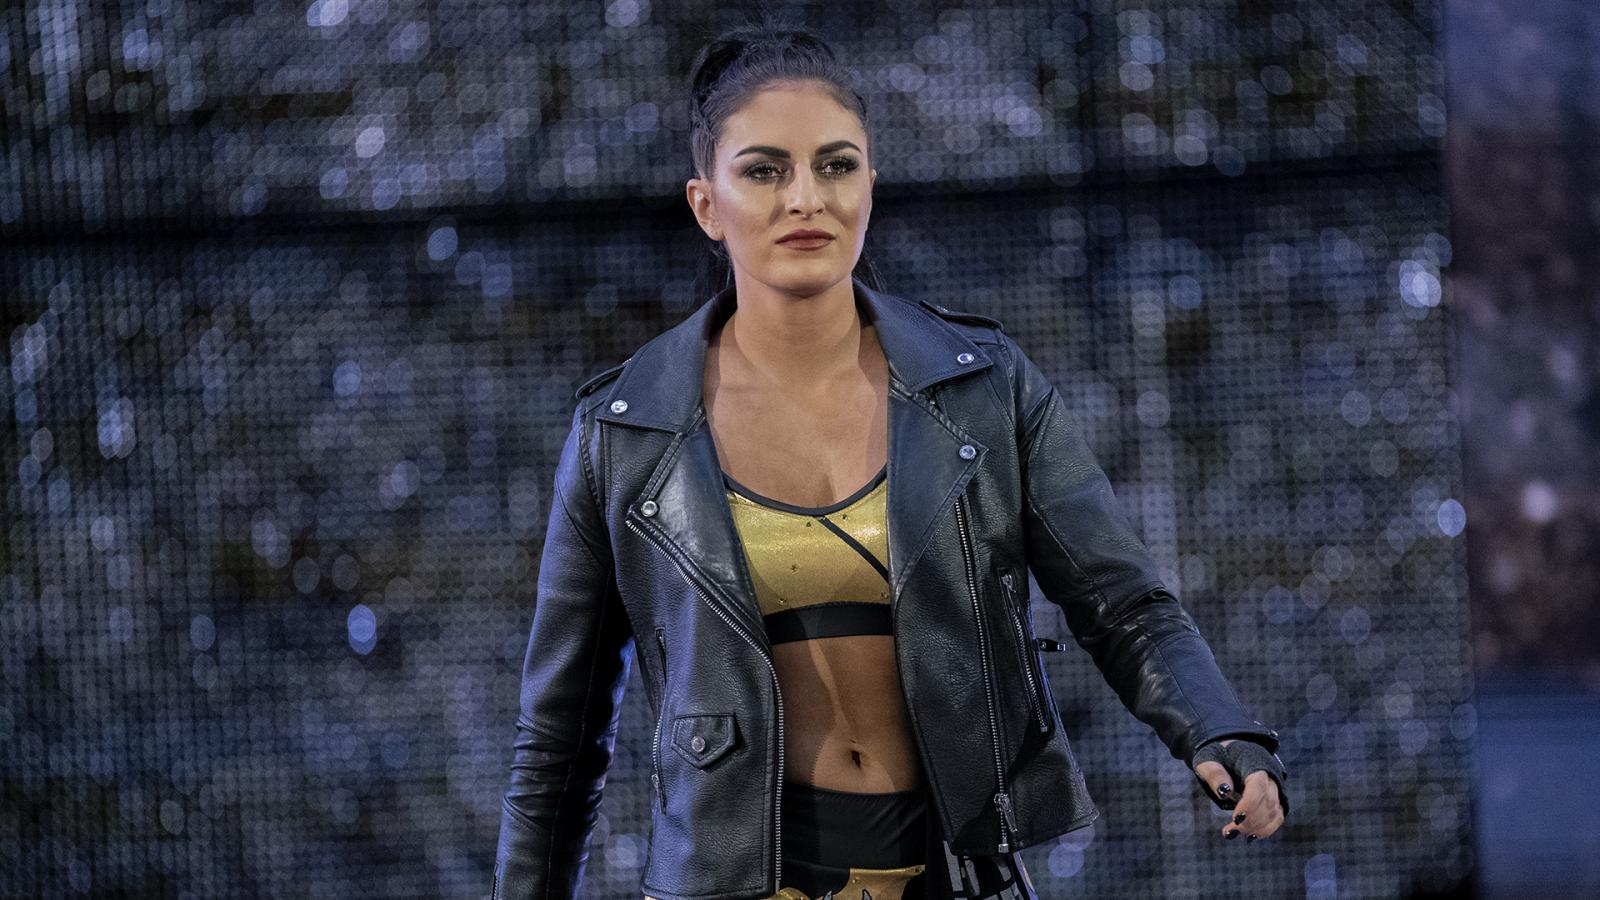 Update on Sonya Deville's possible return to the ring